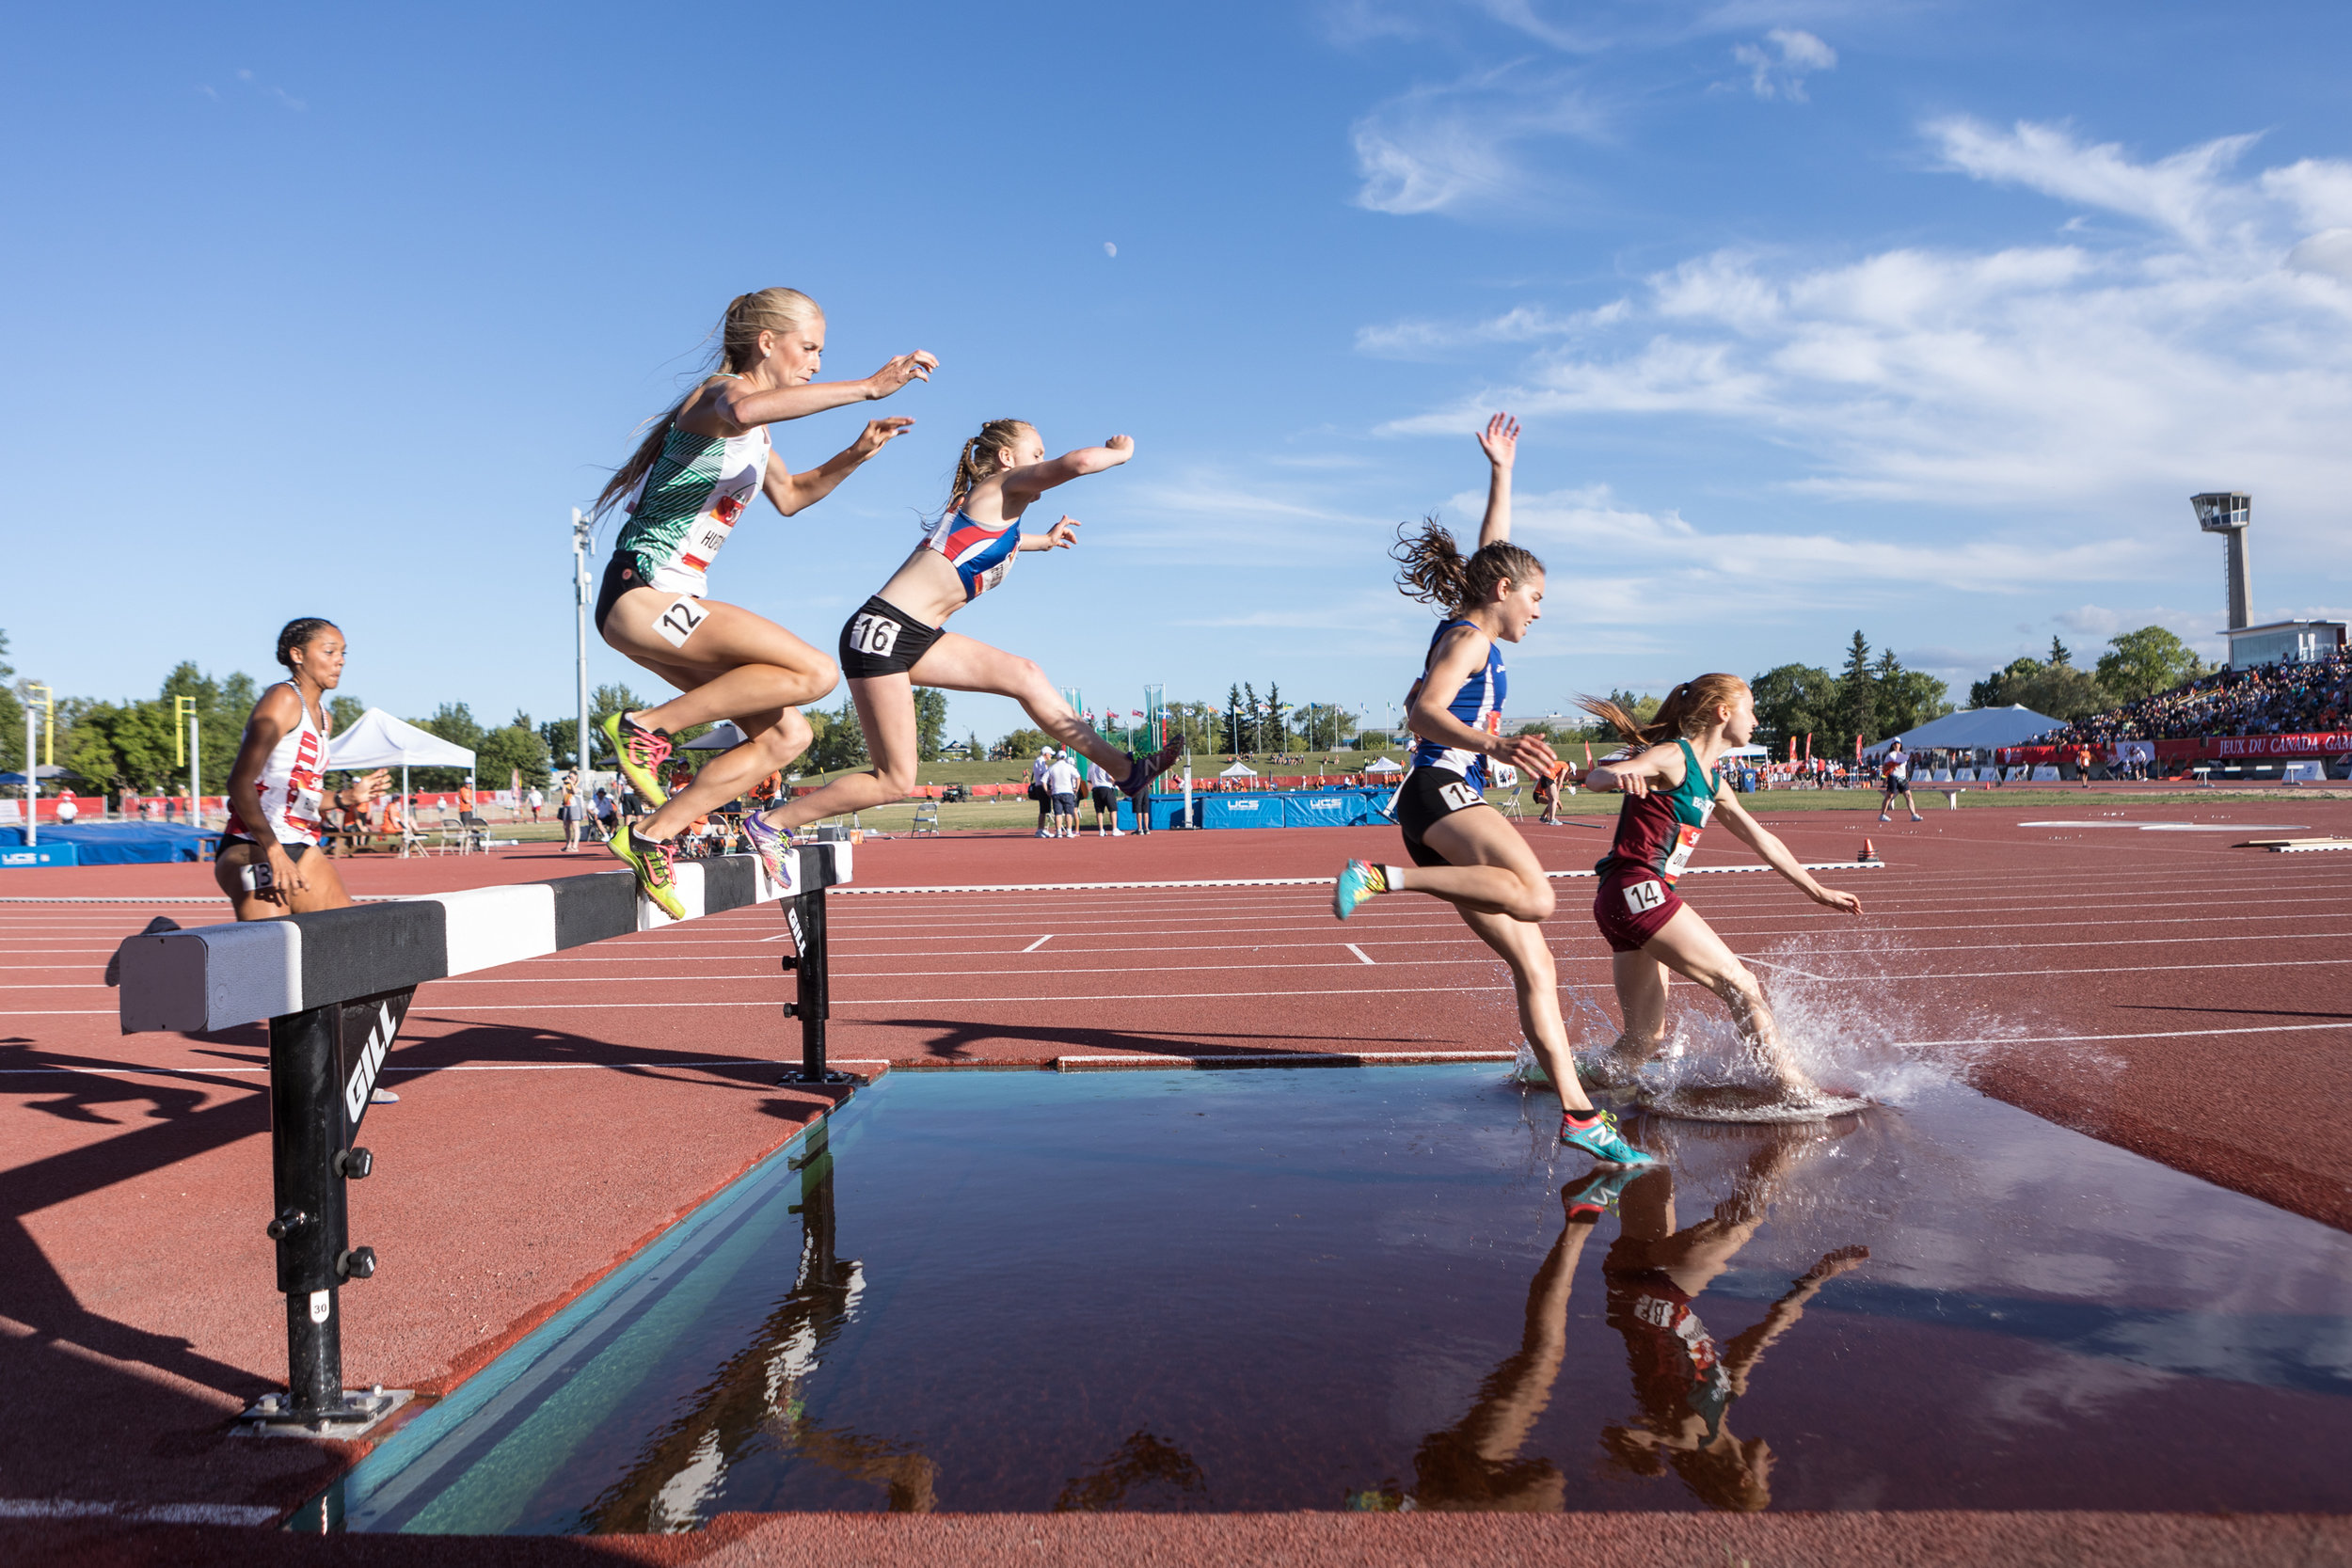 Canada Summer Games - Steeple Chase